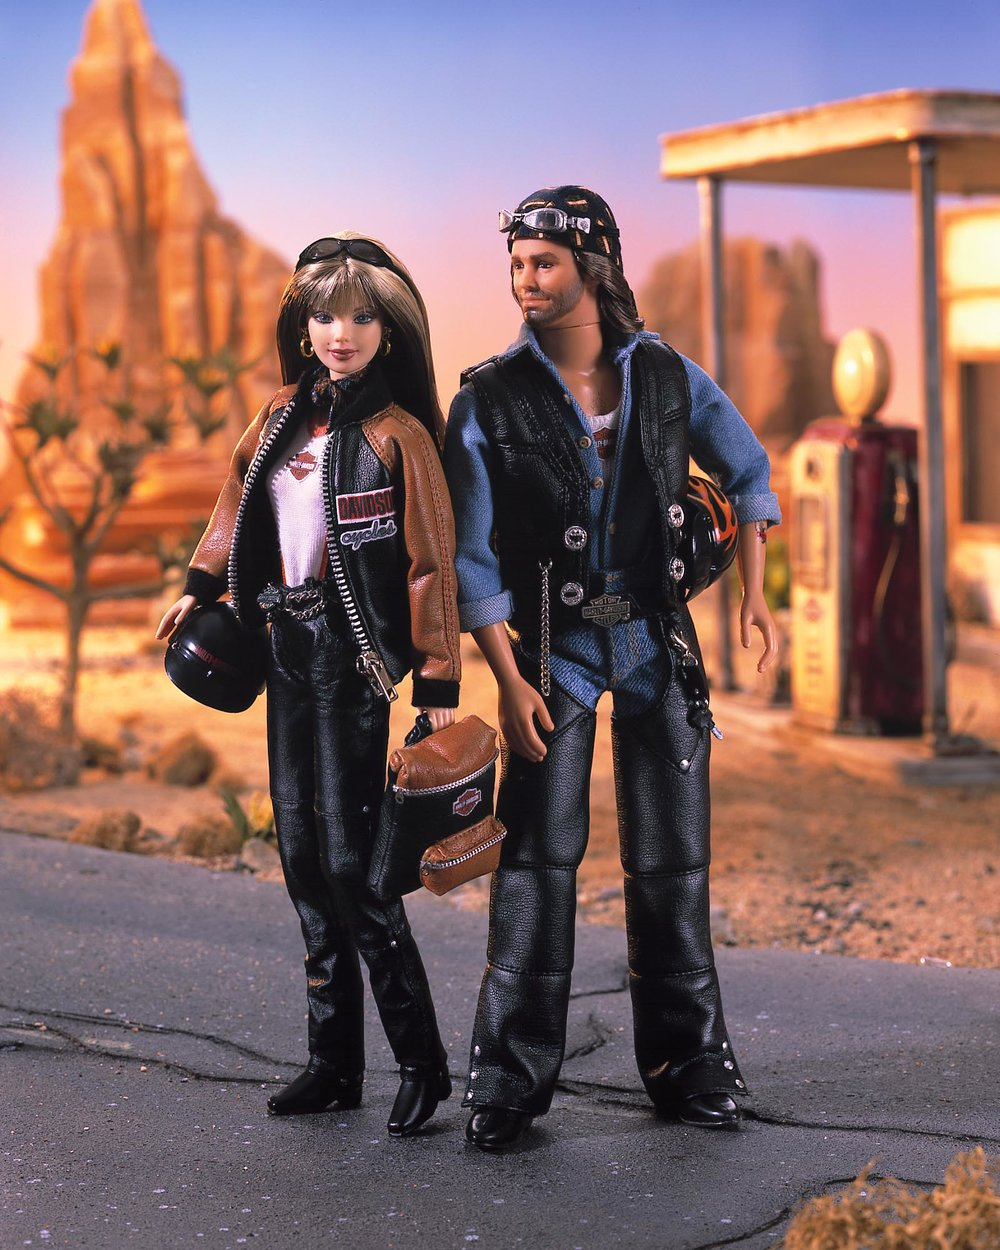 Harley Davidson Barbie and Ken Dolls